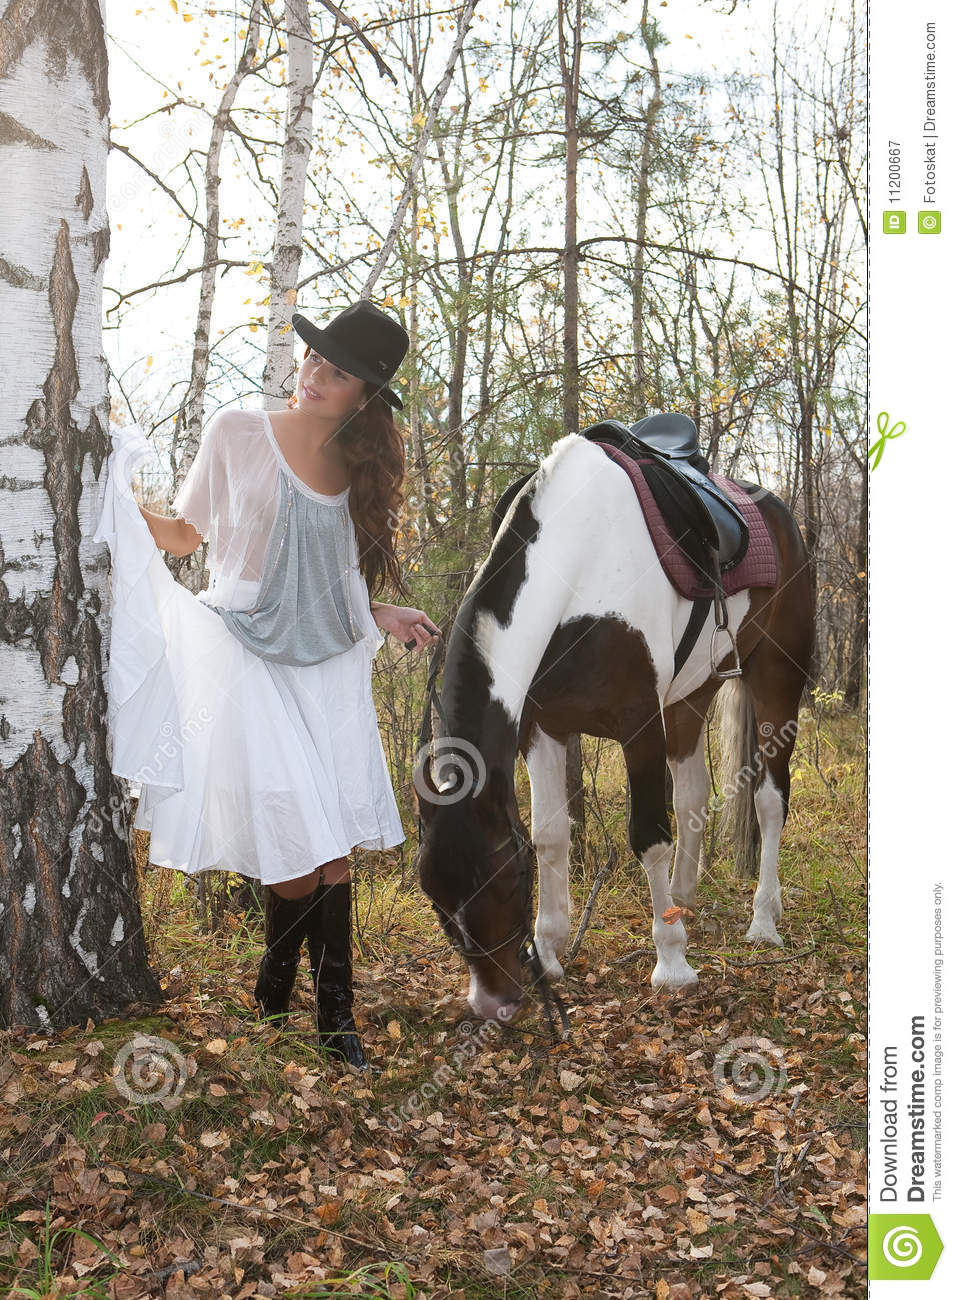 Young Woman And Horse Royalty Free Stock Photography - Image: 11200667